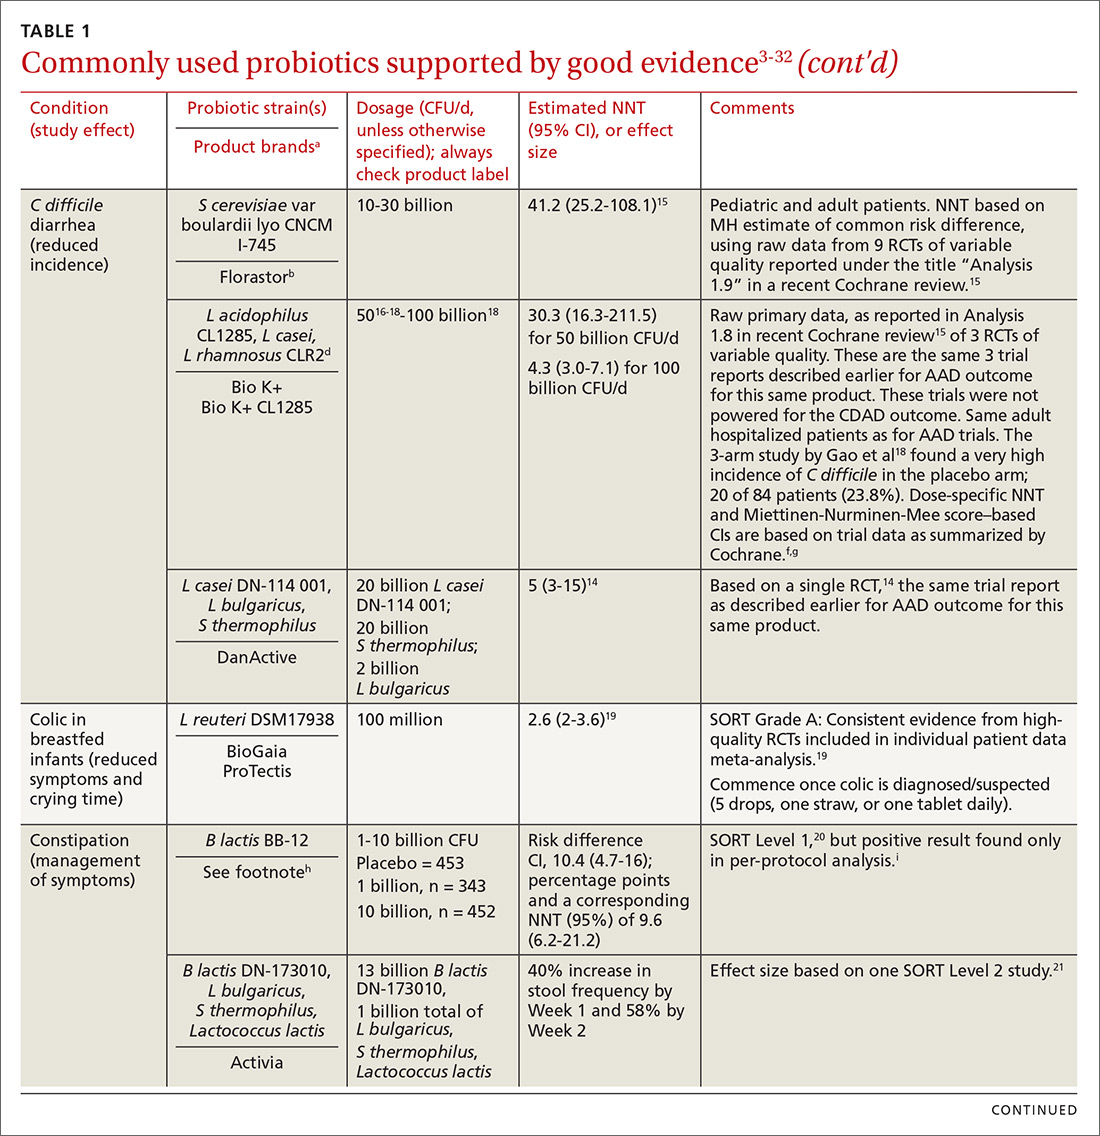 Commonly used probiotics supported by good evidence